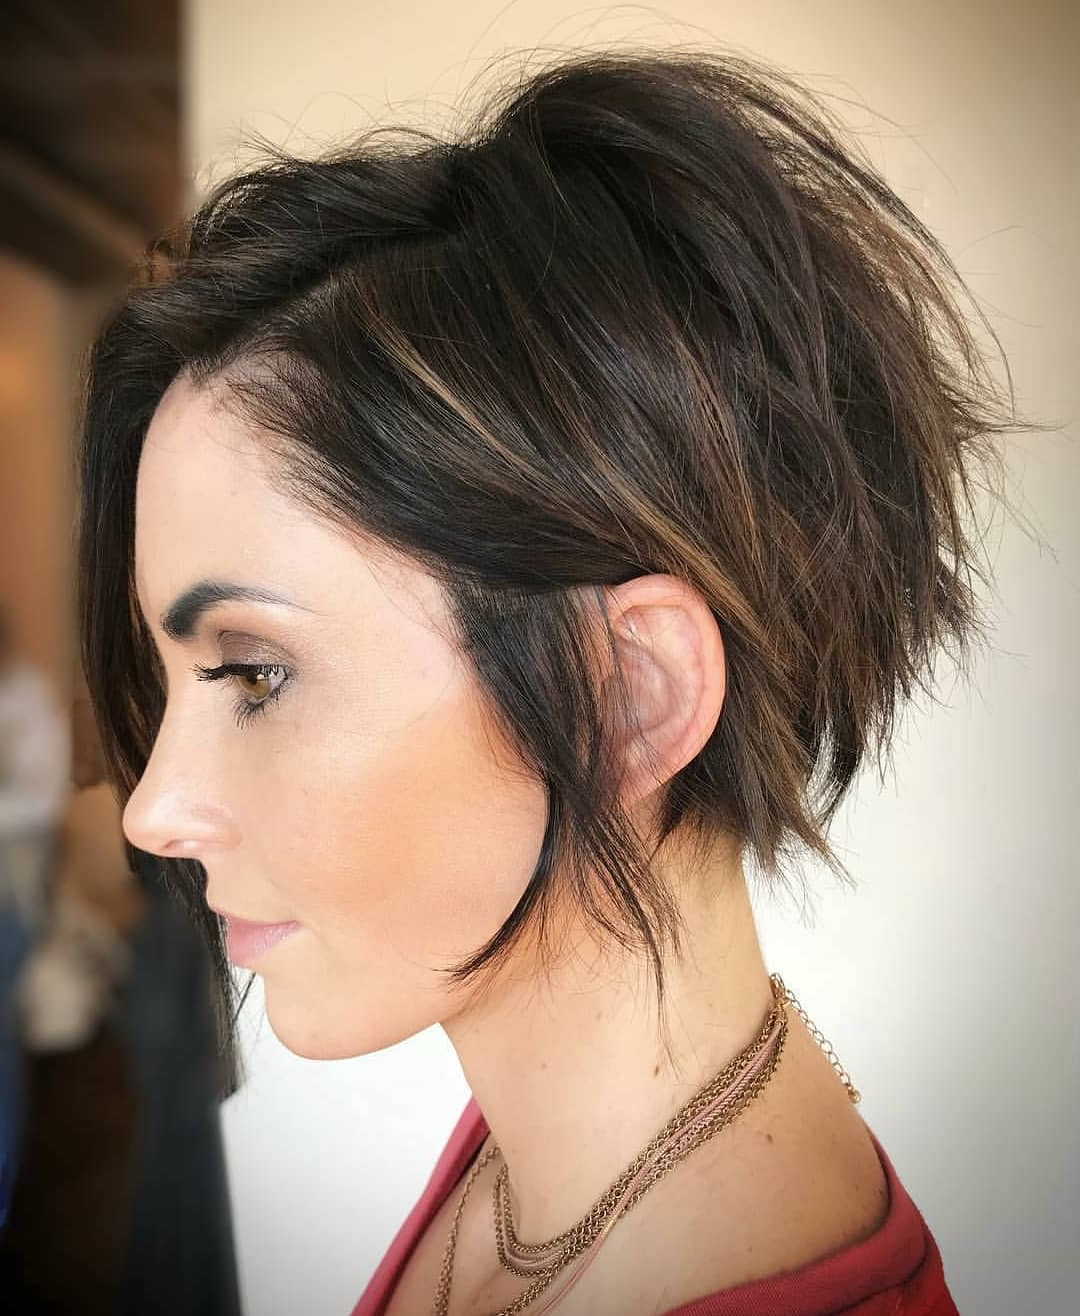 10 Fab Short Hairstyles With Texture & Color, 2018 Women Short Haircuts In Short Haircuts For Curvy Women (View 20 of 25)